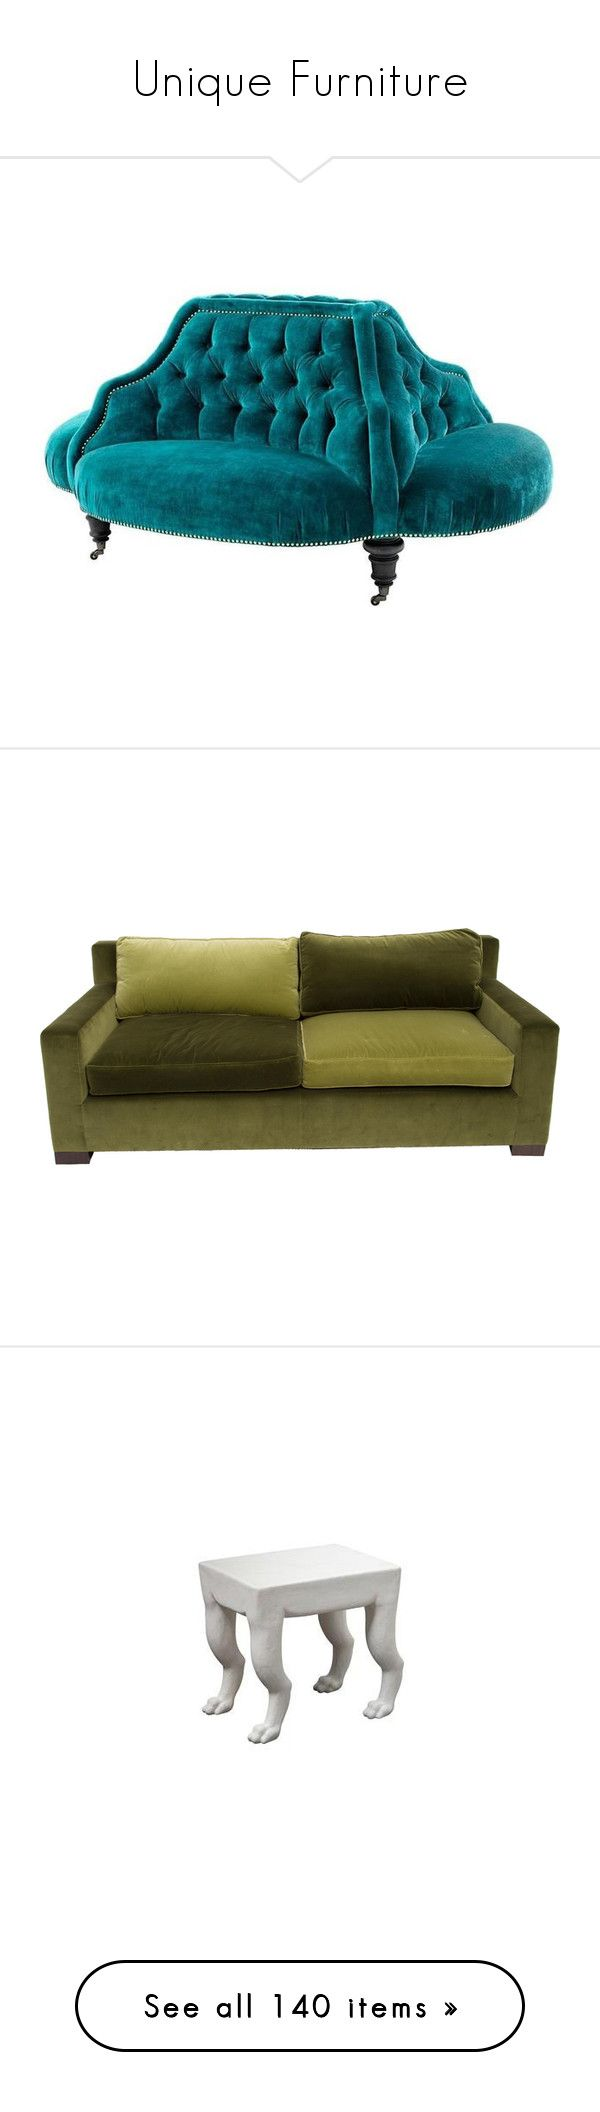 """""""Unique Furniture"""" by mysfytdesigns ❤ liked on Polyvore featuring home, furniture, sofas, green, leather couch, green leather sofa, velvet sofa, green furniture, velvet couch and oversized furniture"""